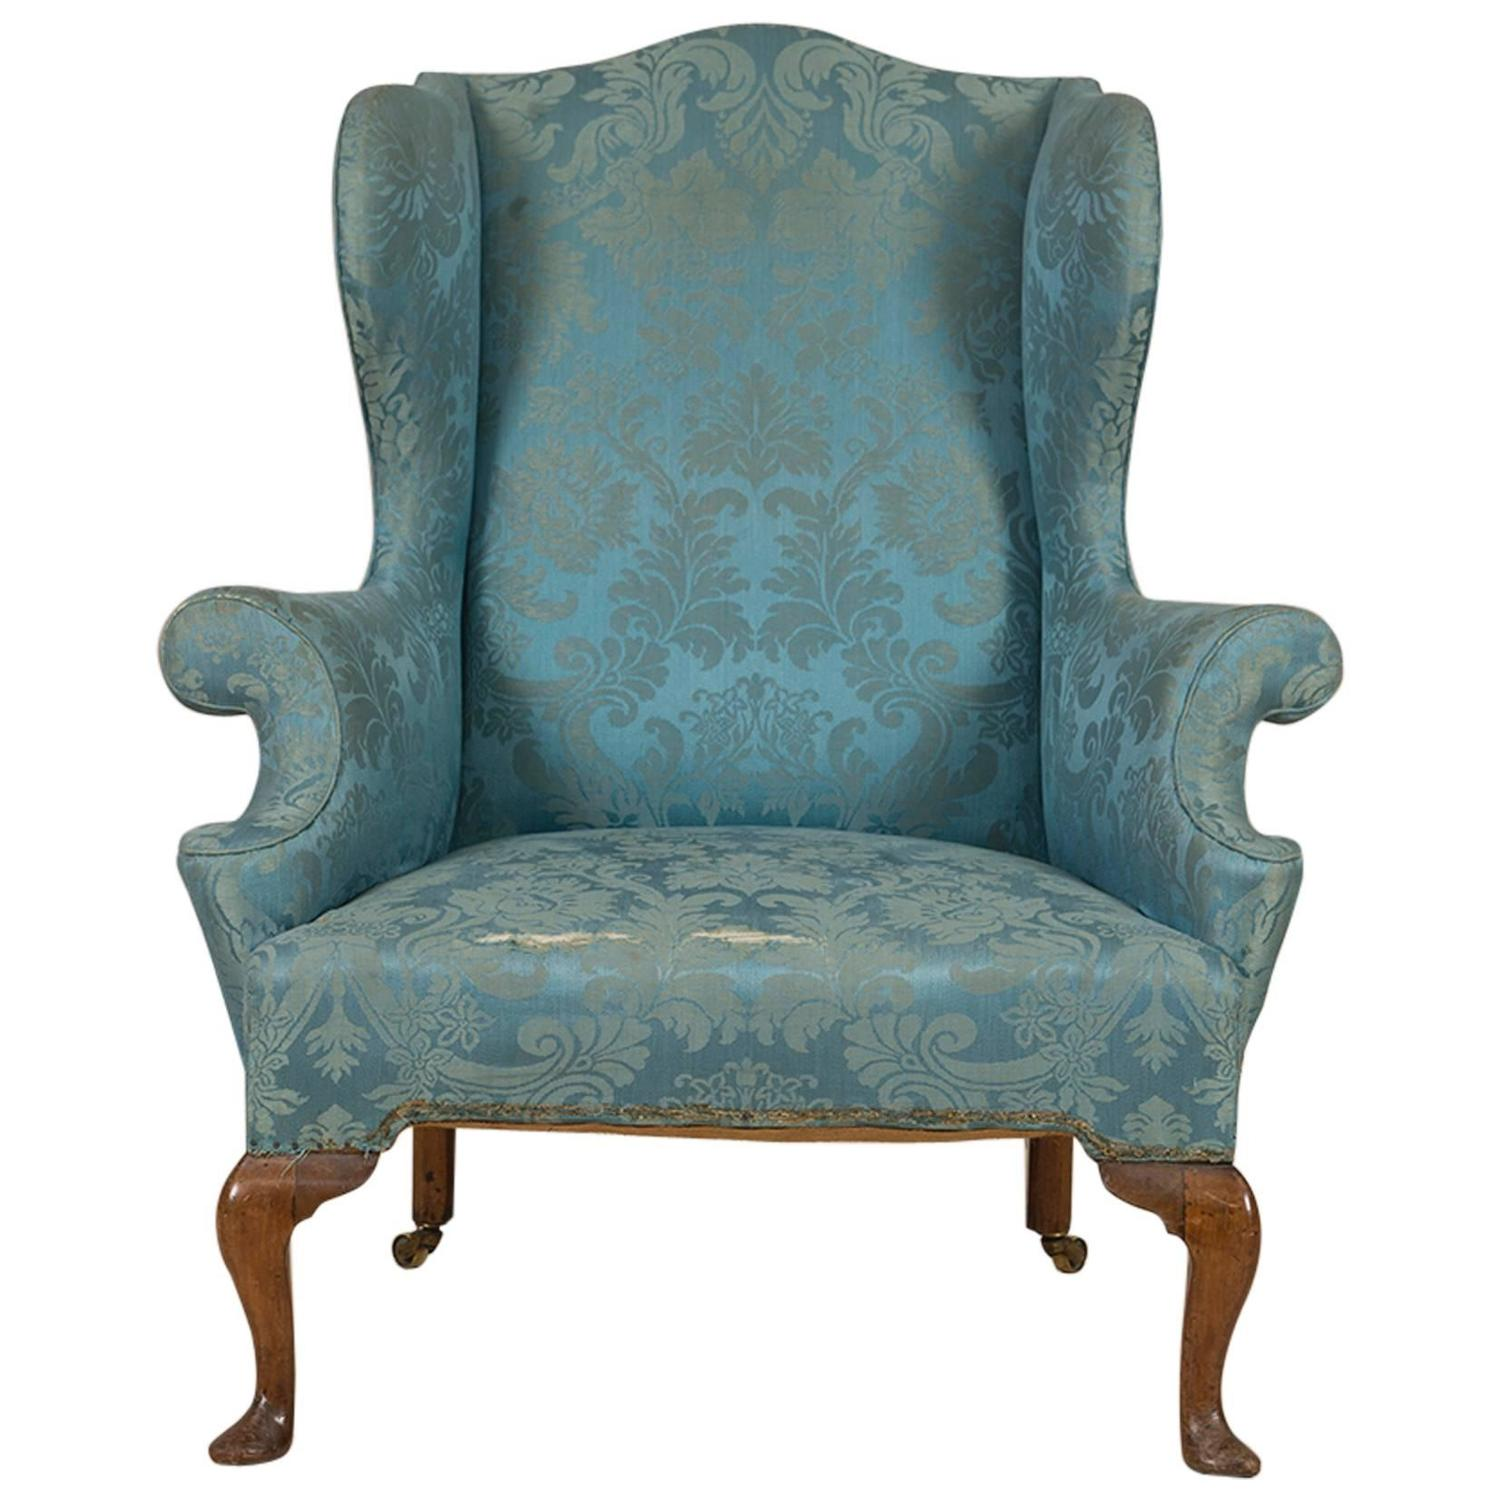 Queen Anne Wingback Chair Queen Anne Walnut Wing Chair Circa 1710 For Sale At 1stdibs